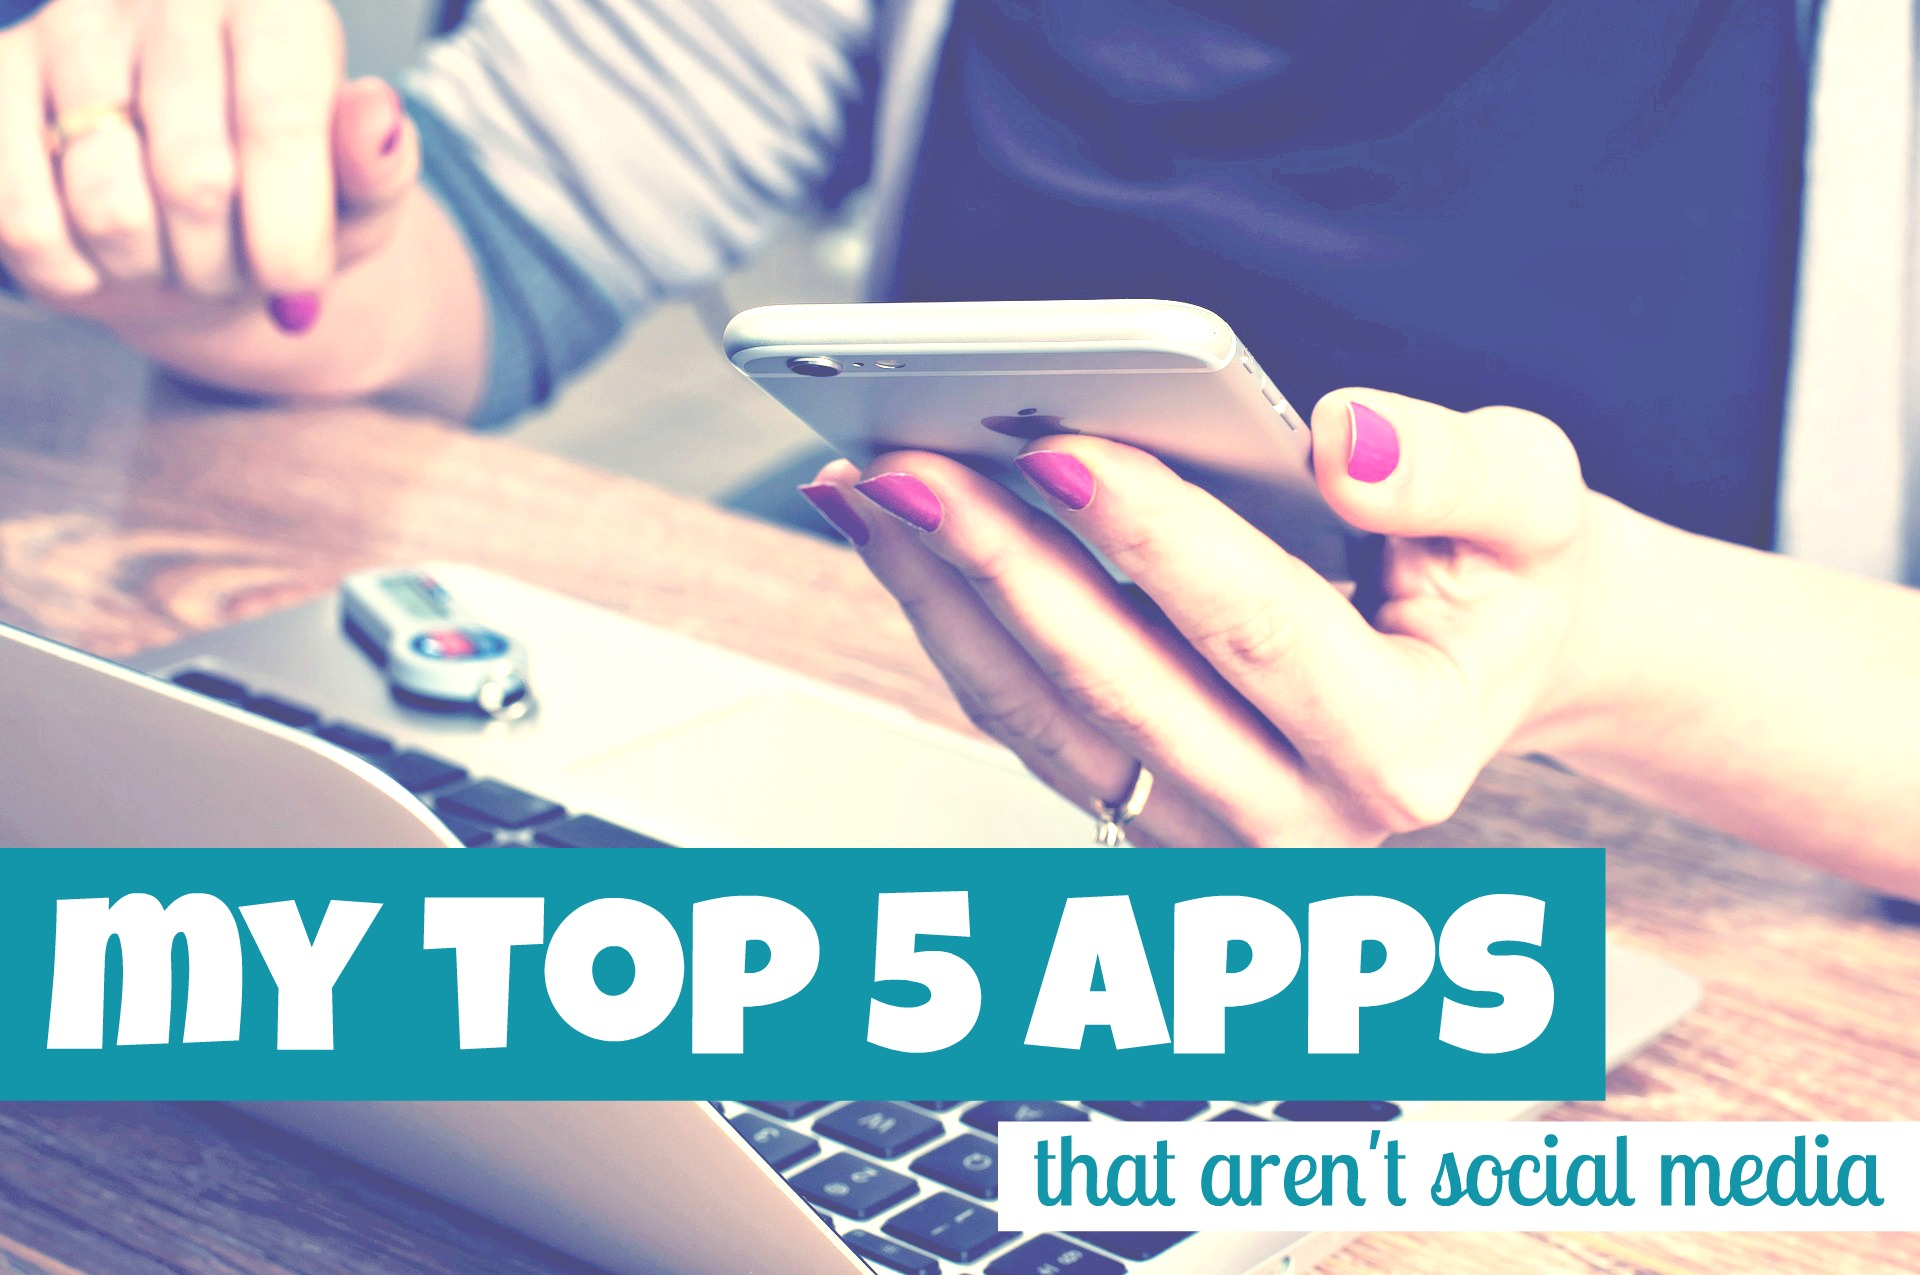 My top 5 apps (that aren't for social media)